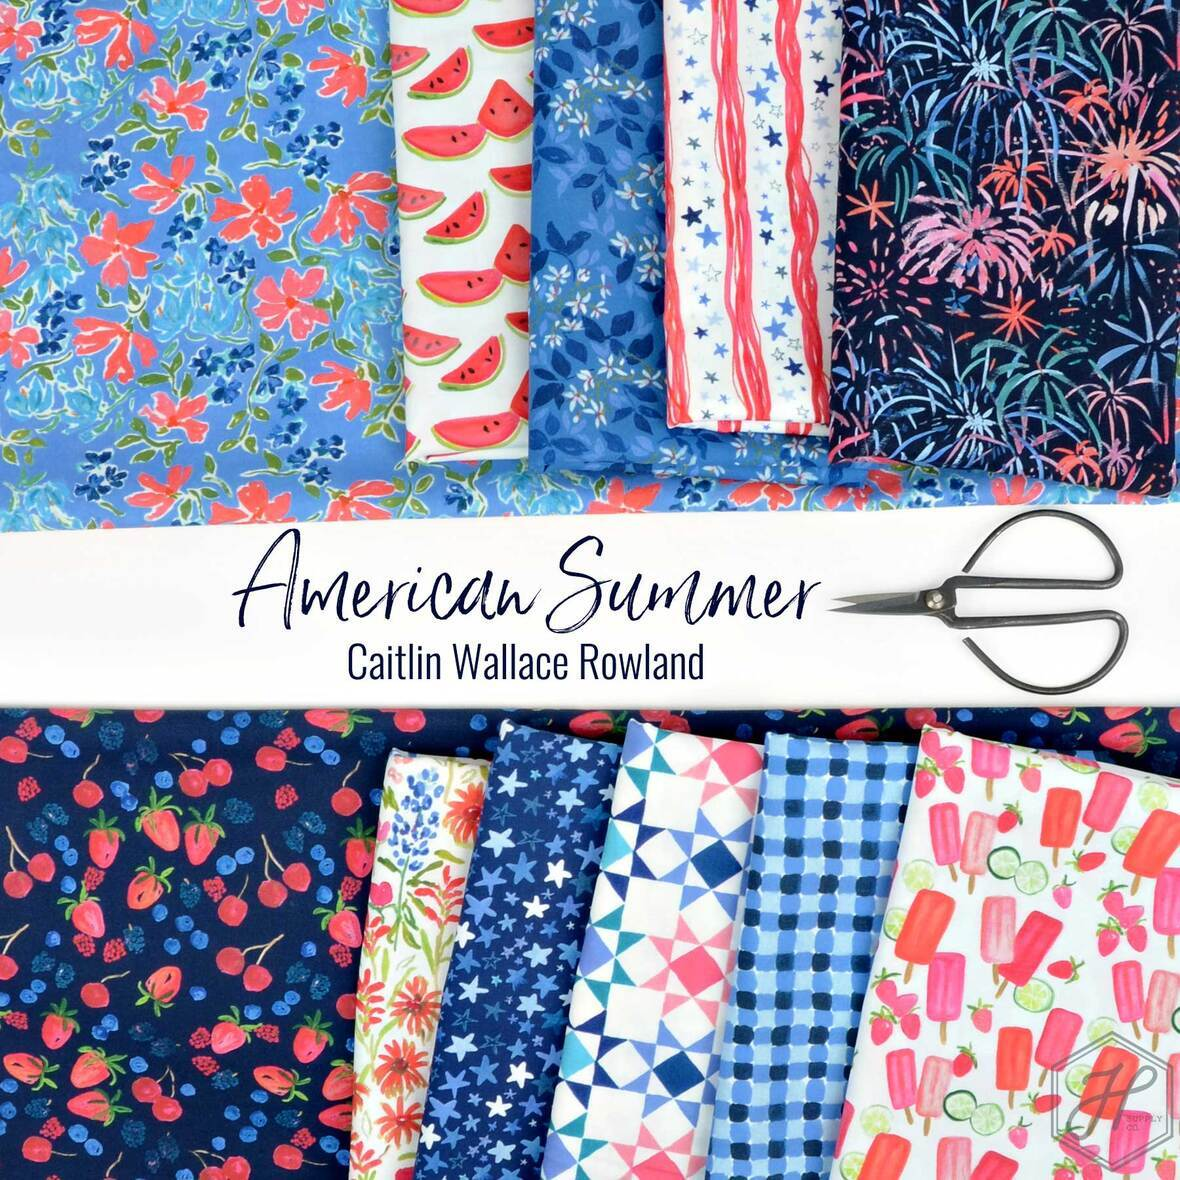 American-Summer-Caitlin-Wallace-Rowland-for-Dear-Stella-fabric-at-Hawthorne-Supply-Co